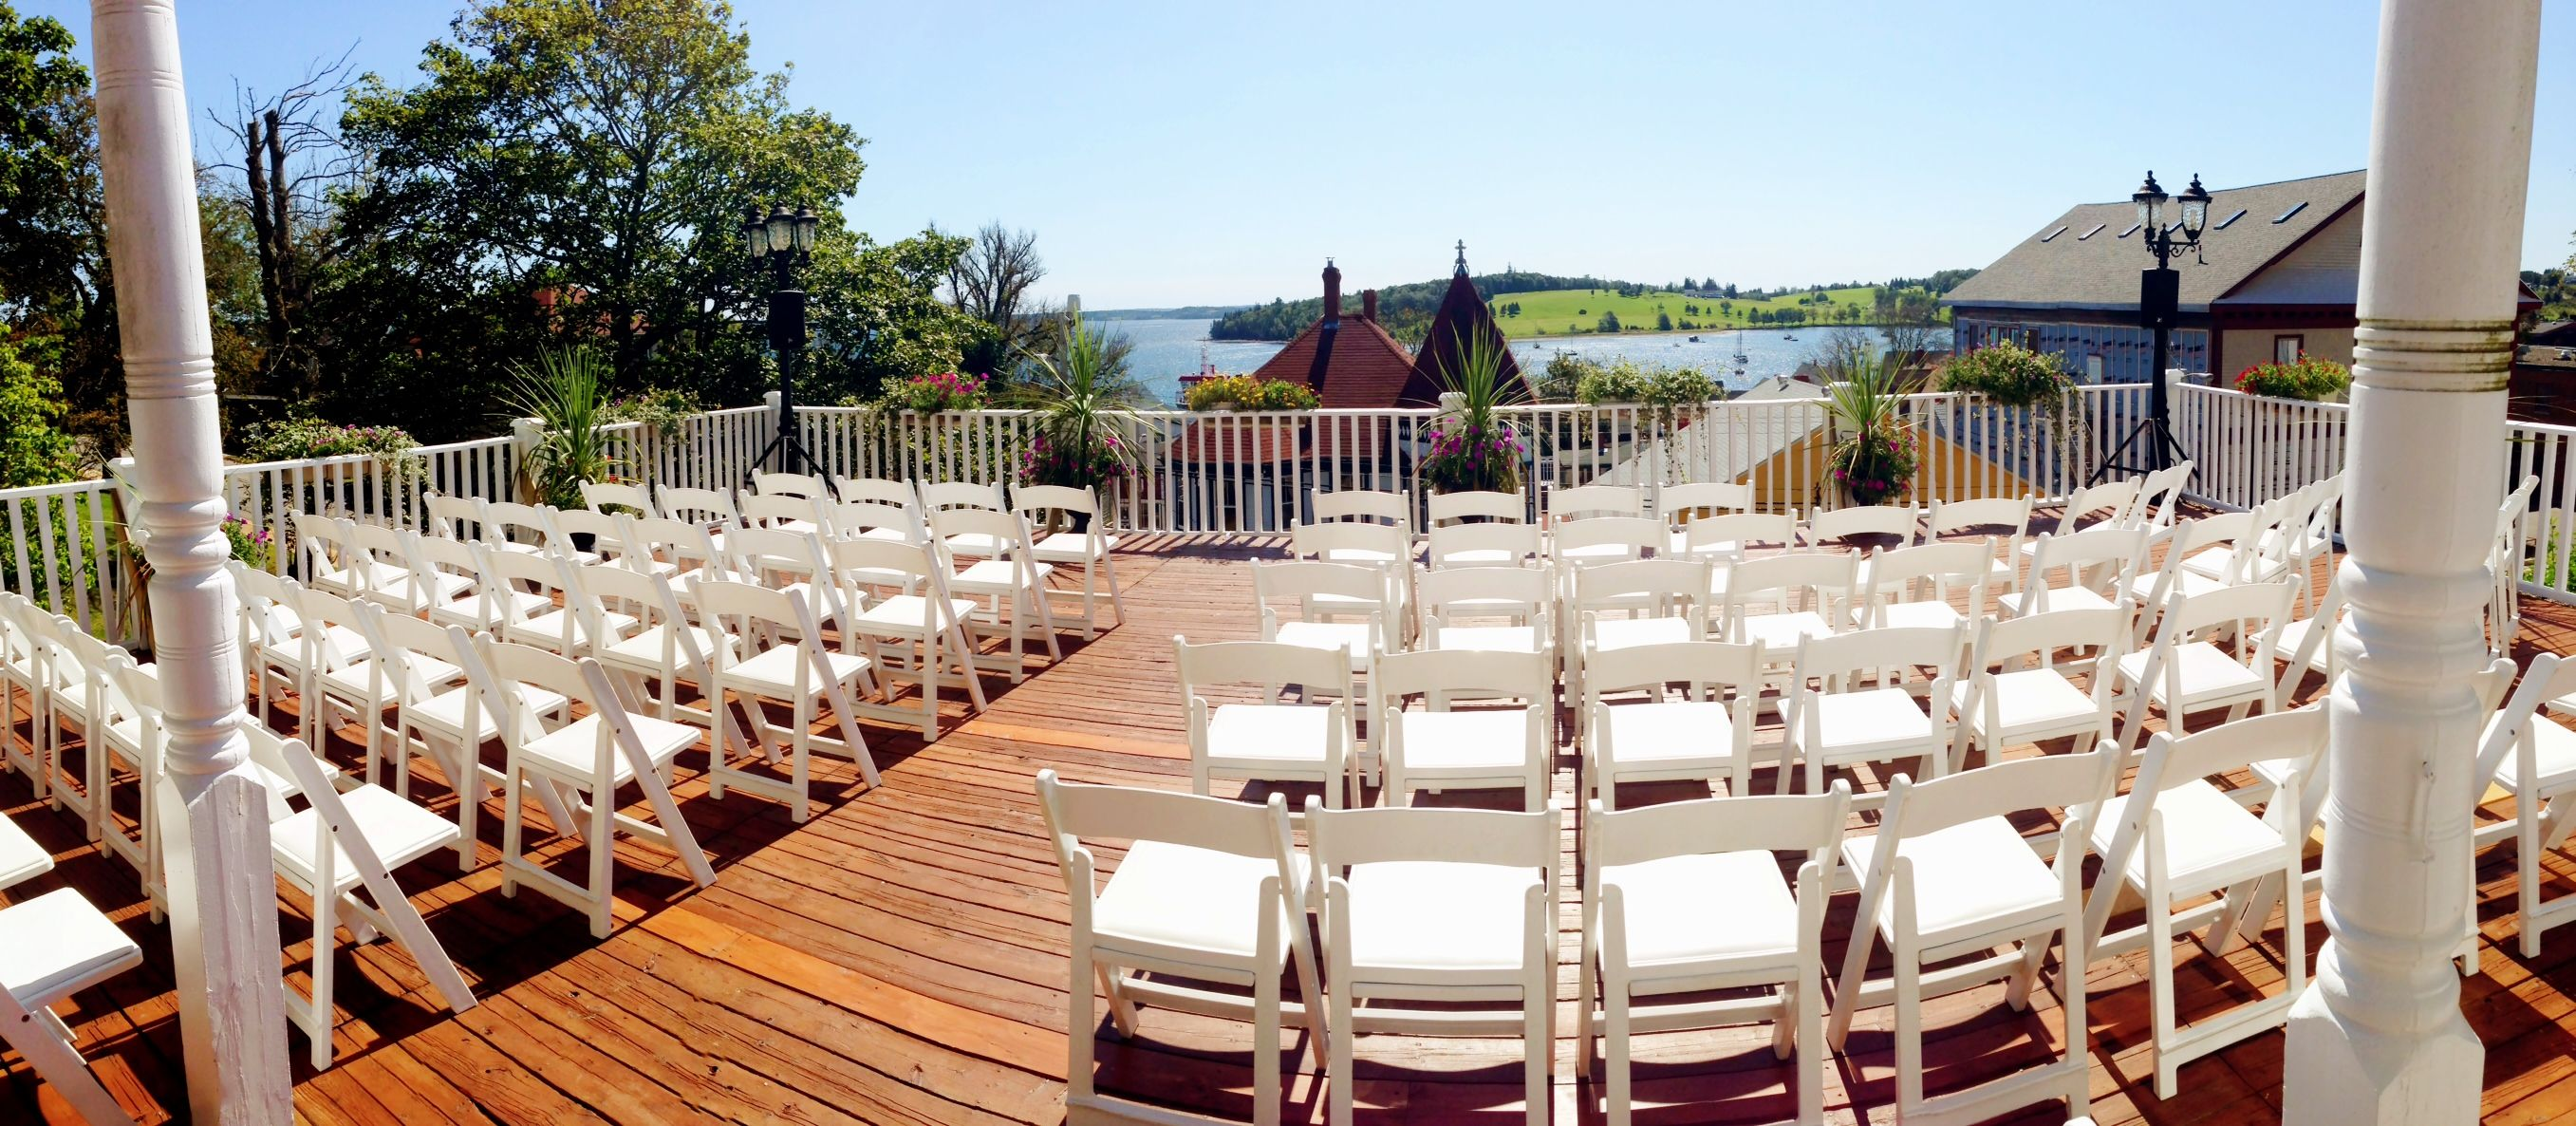 Have Your Wedding On The Deck Overlooking Lunenburg Harbour At Boscawen Inn